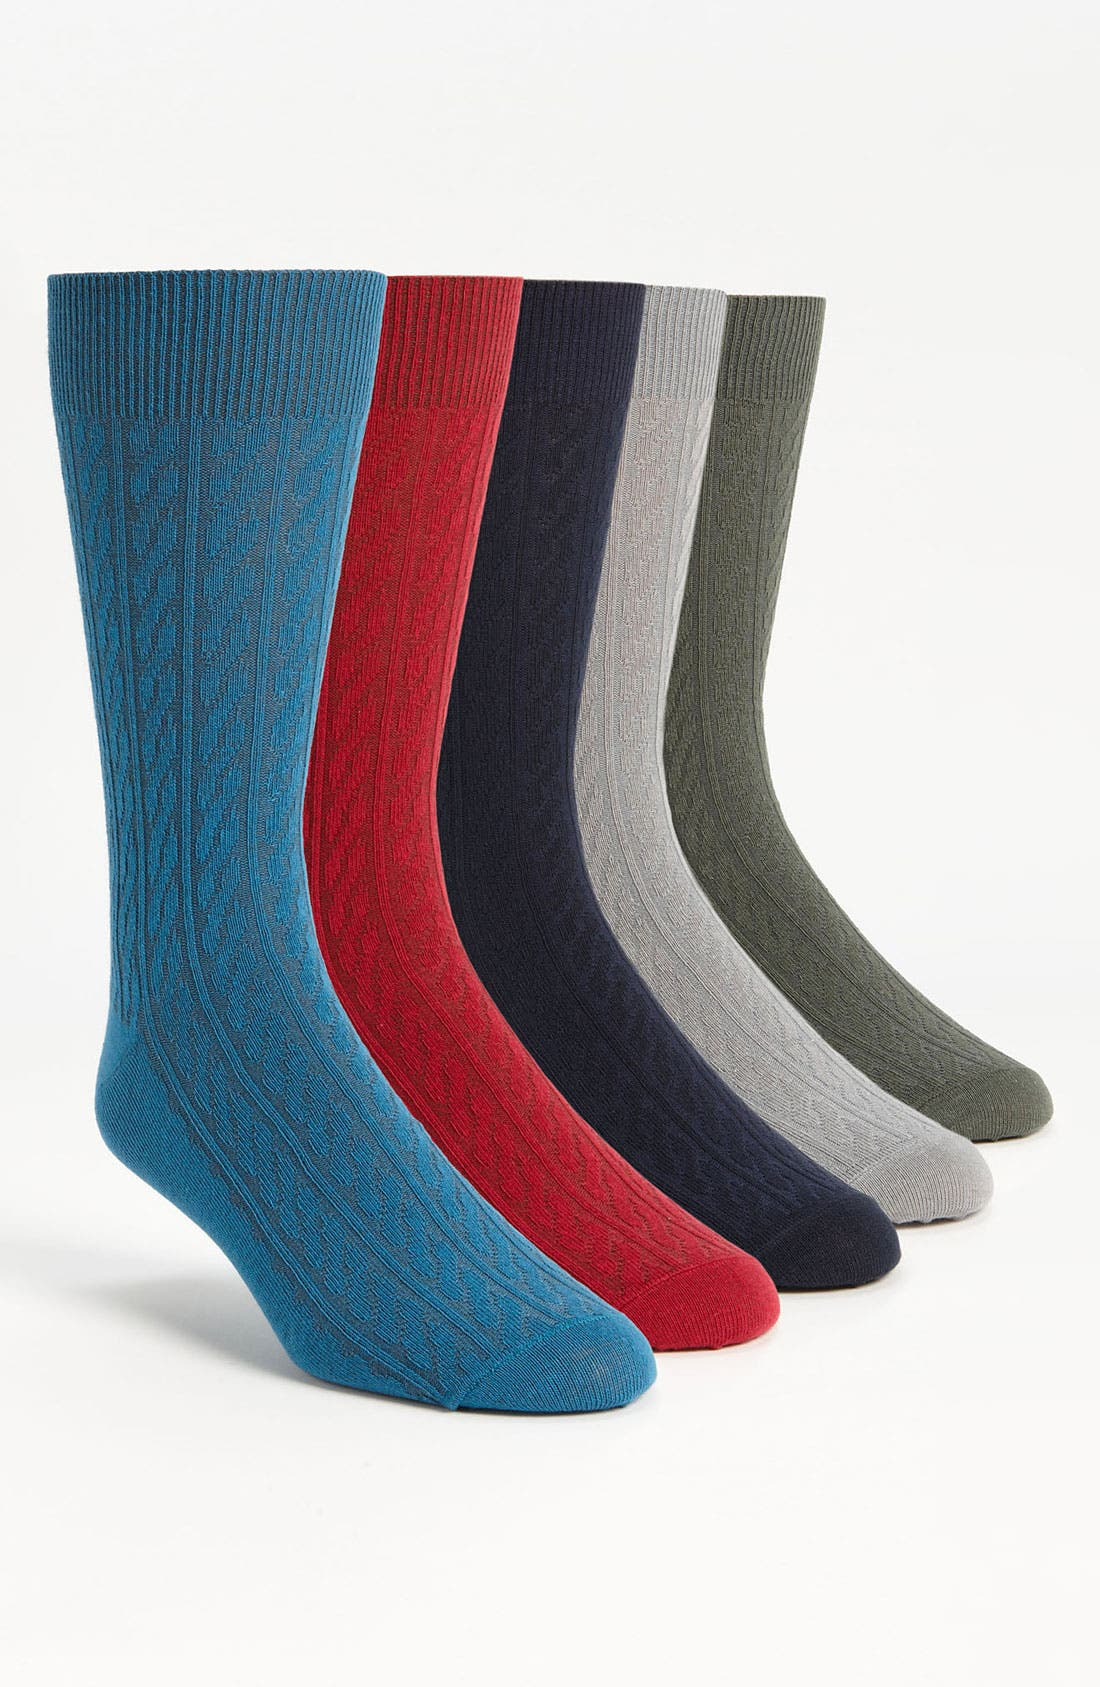 Alternate Image 1 Selected - Topman Cable Knit Socks (5-Pack)